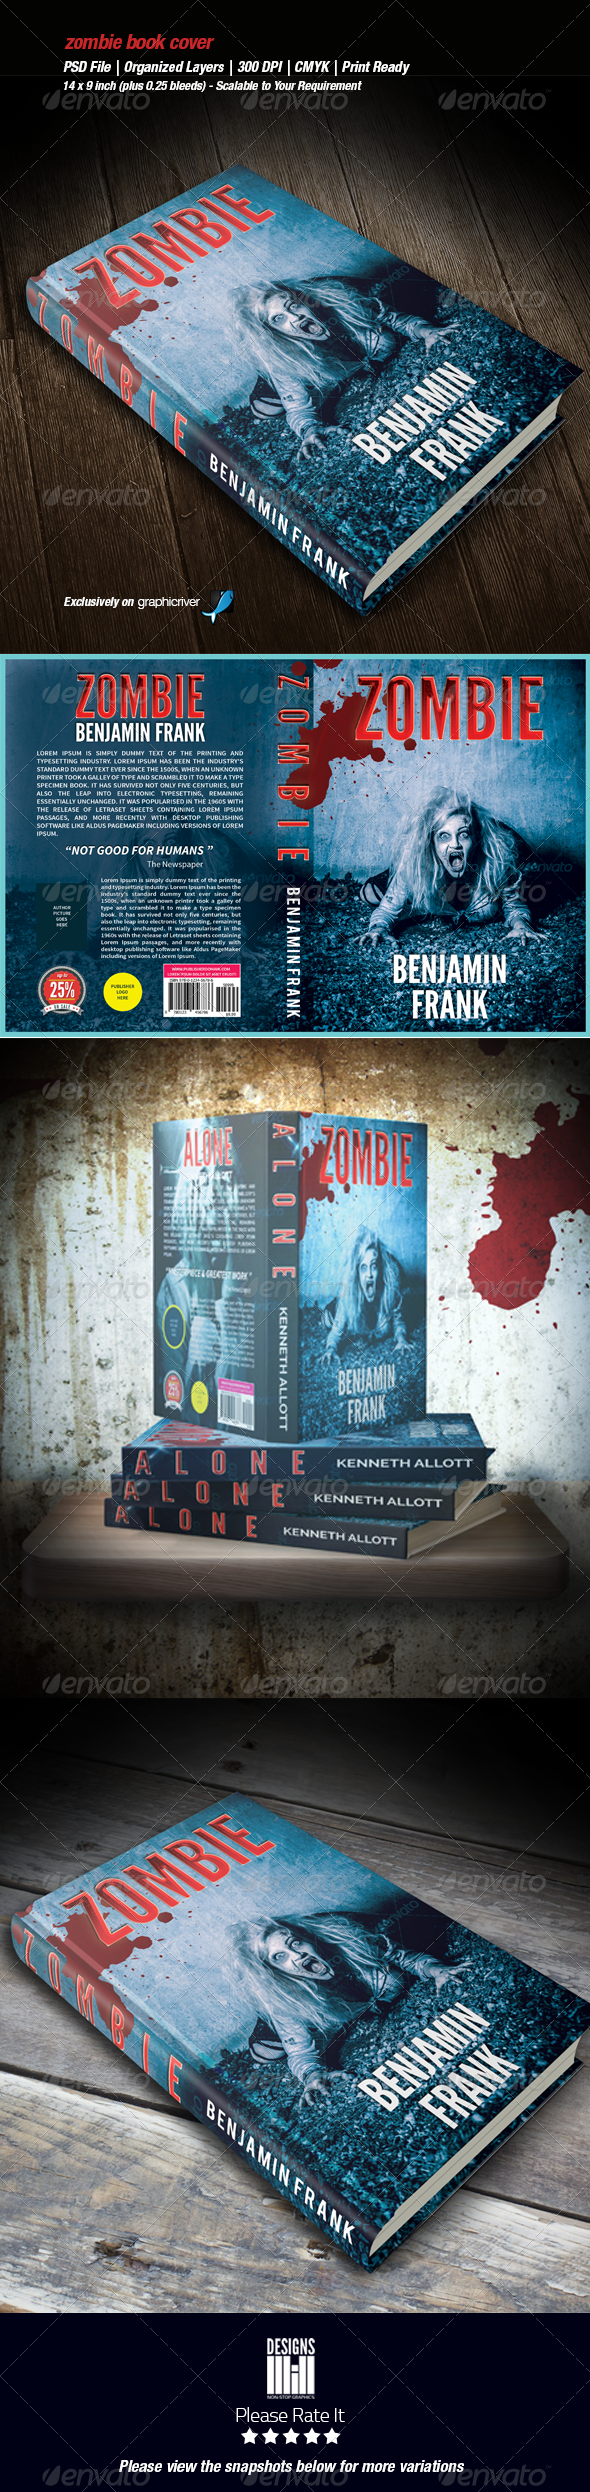 Zombie Book Cover 01 - Miscellaneous Print Templates